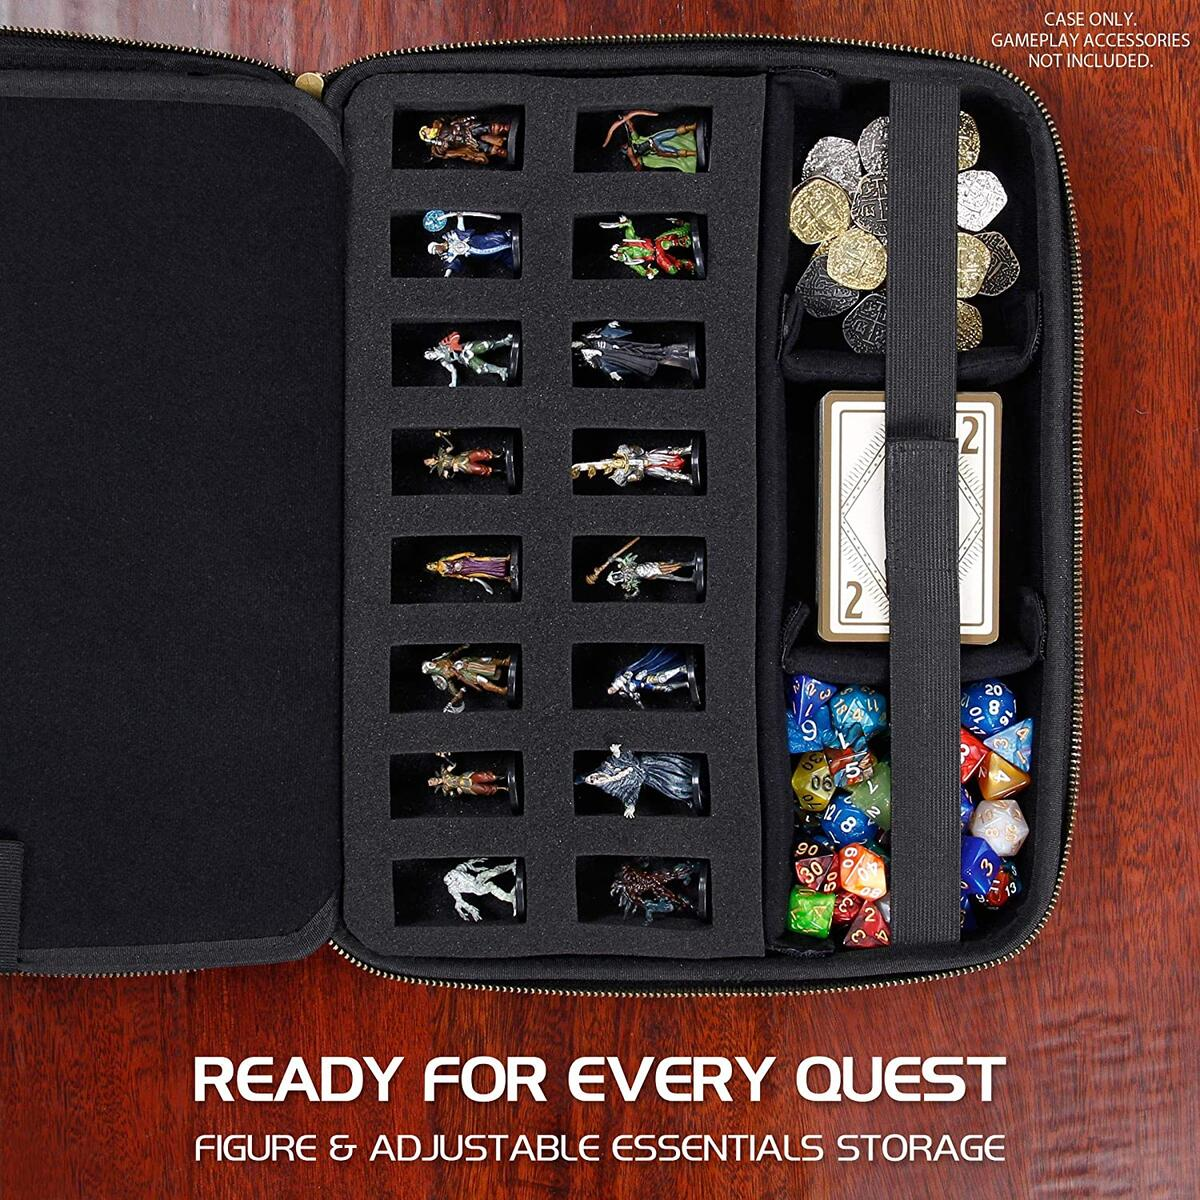 ENHANCE RPG Organizer Case Launch Promo